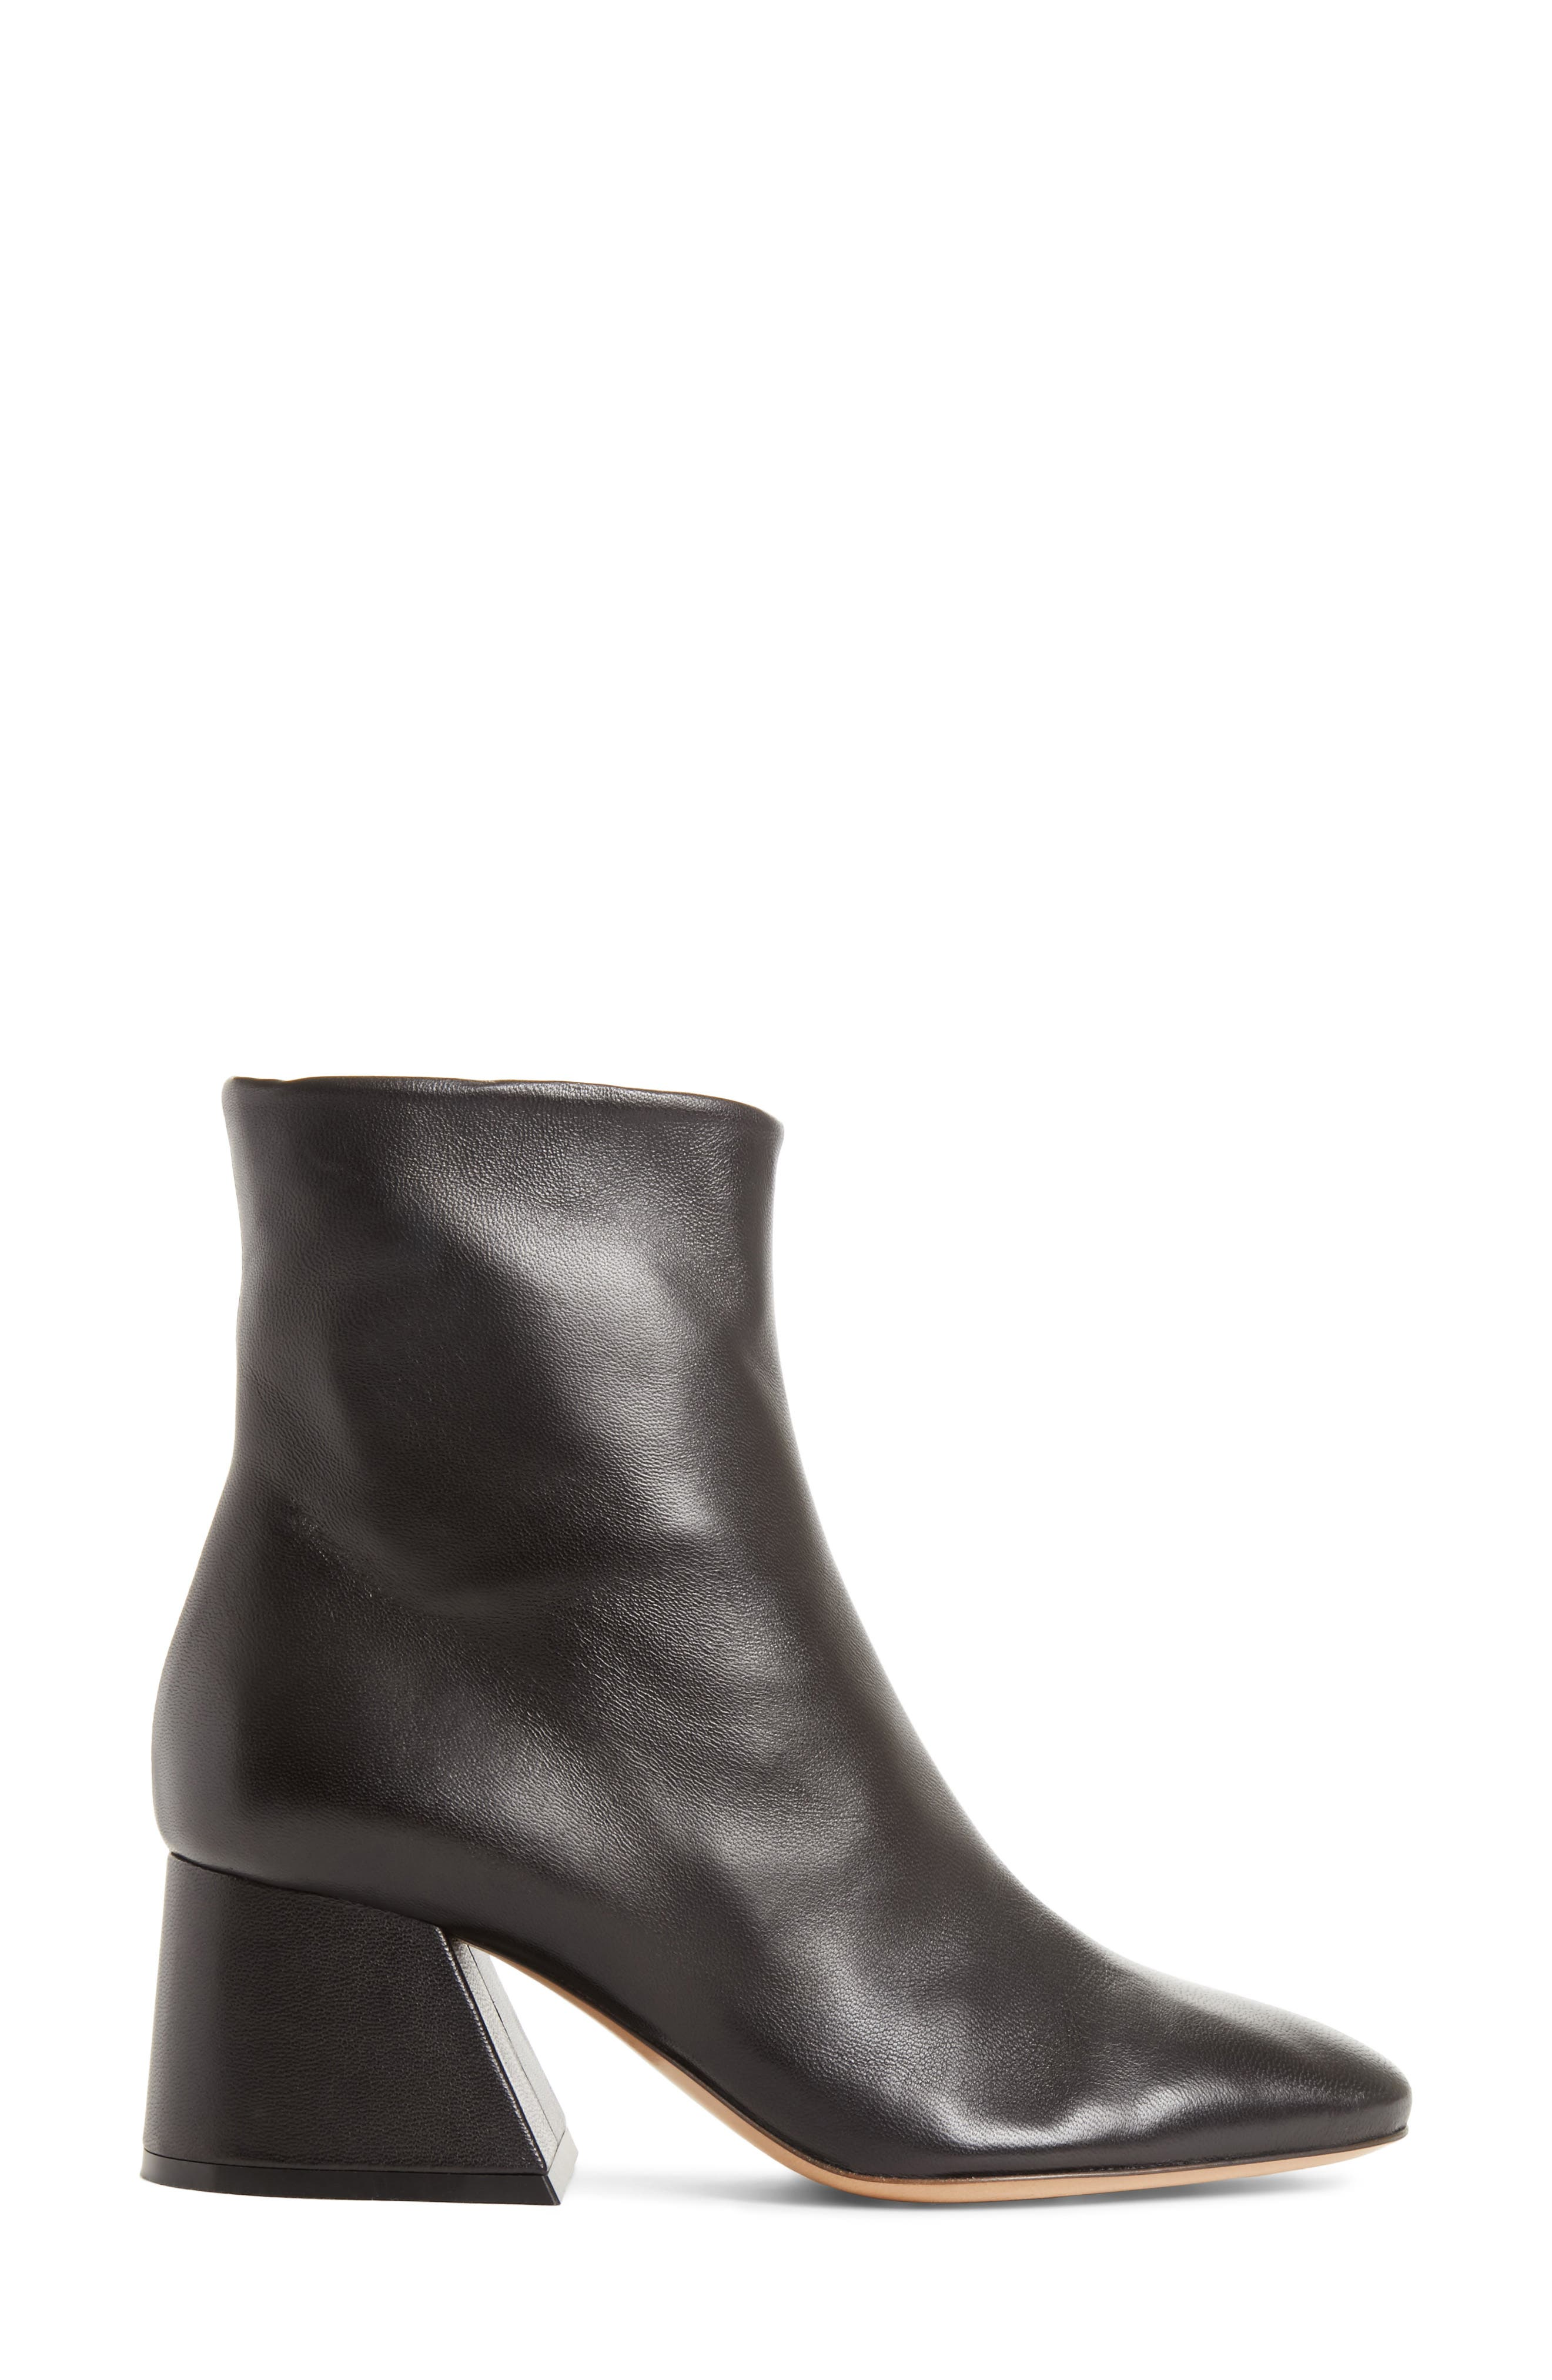 Flare Heel Ankle Boot,                             Alternate thumbnail 3, color,                             Black